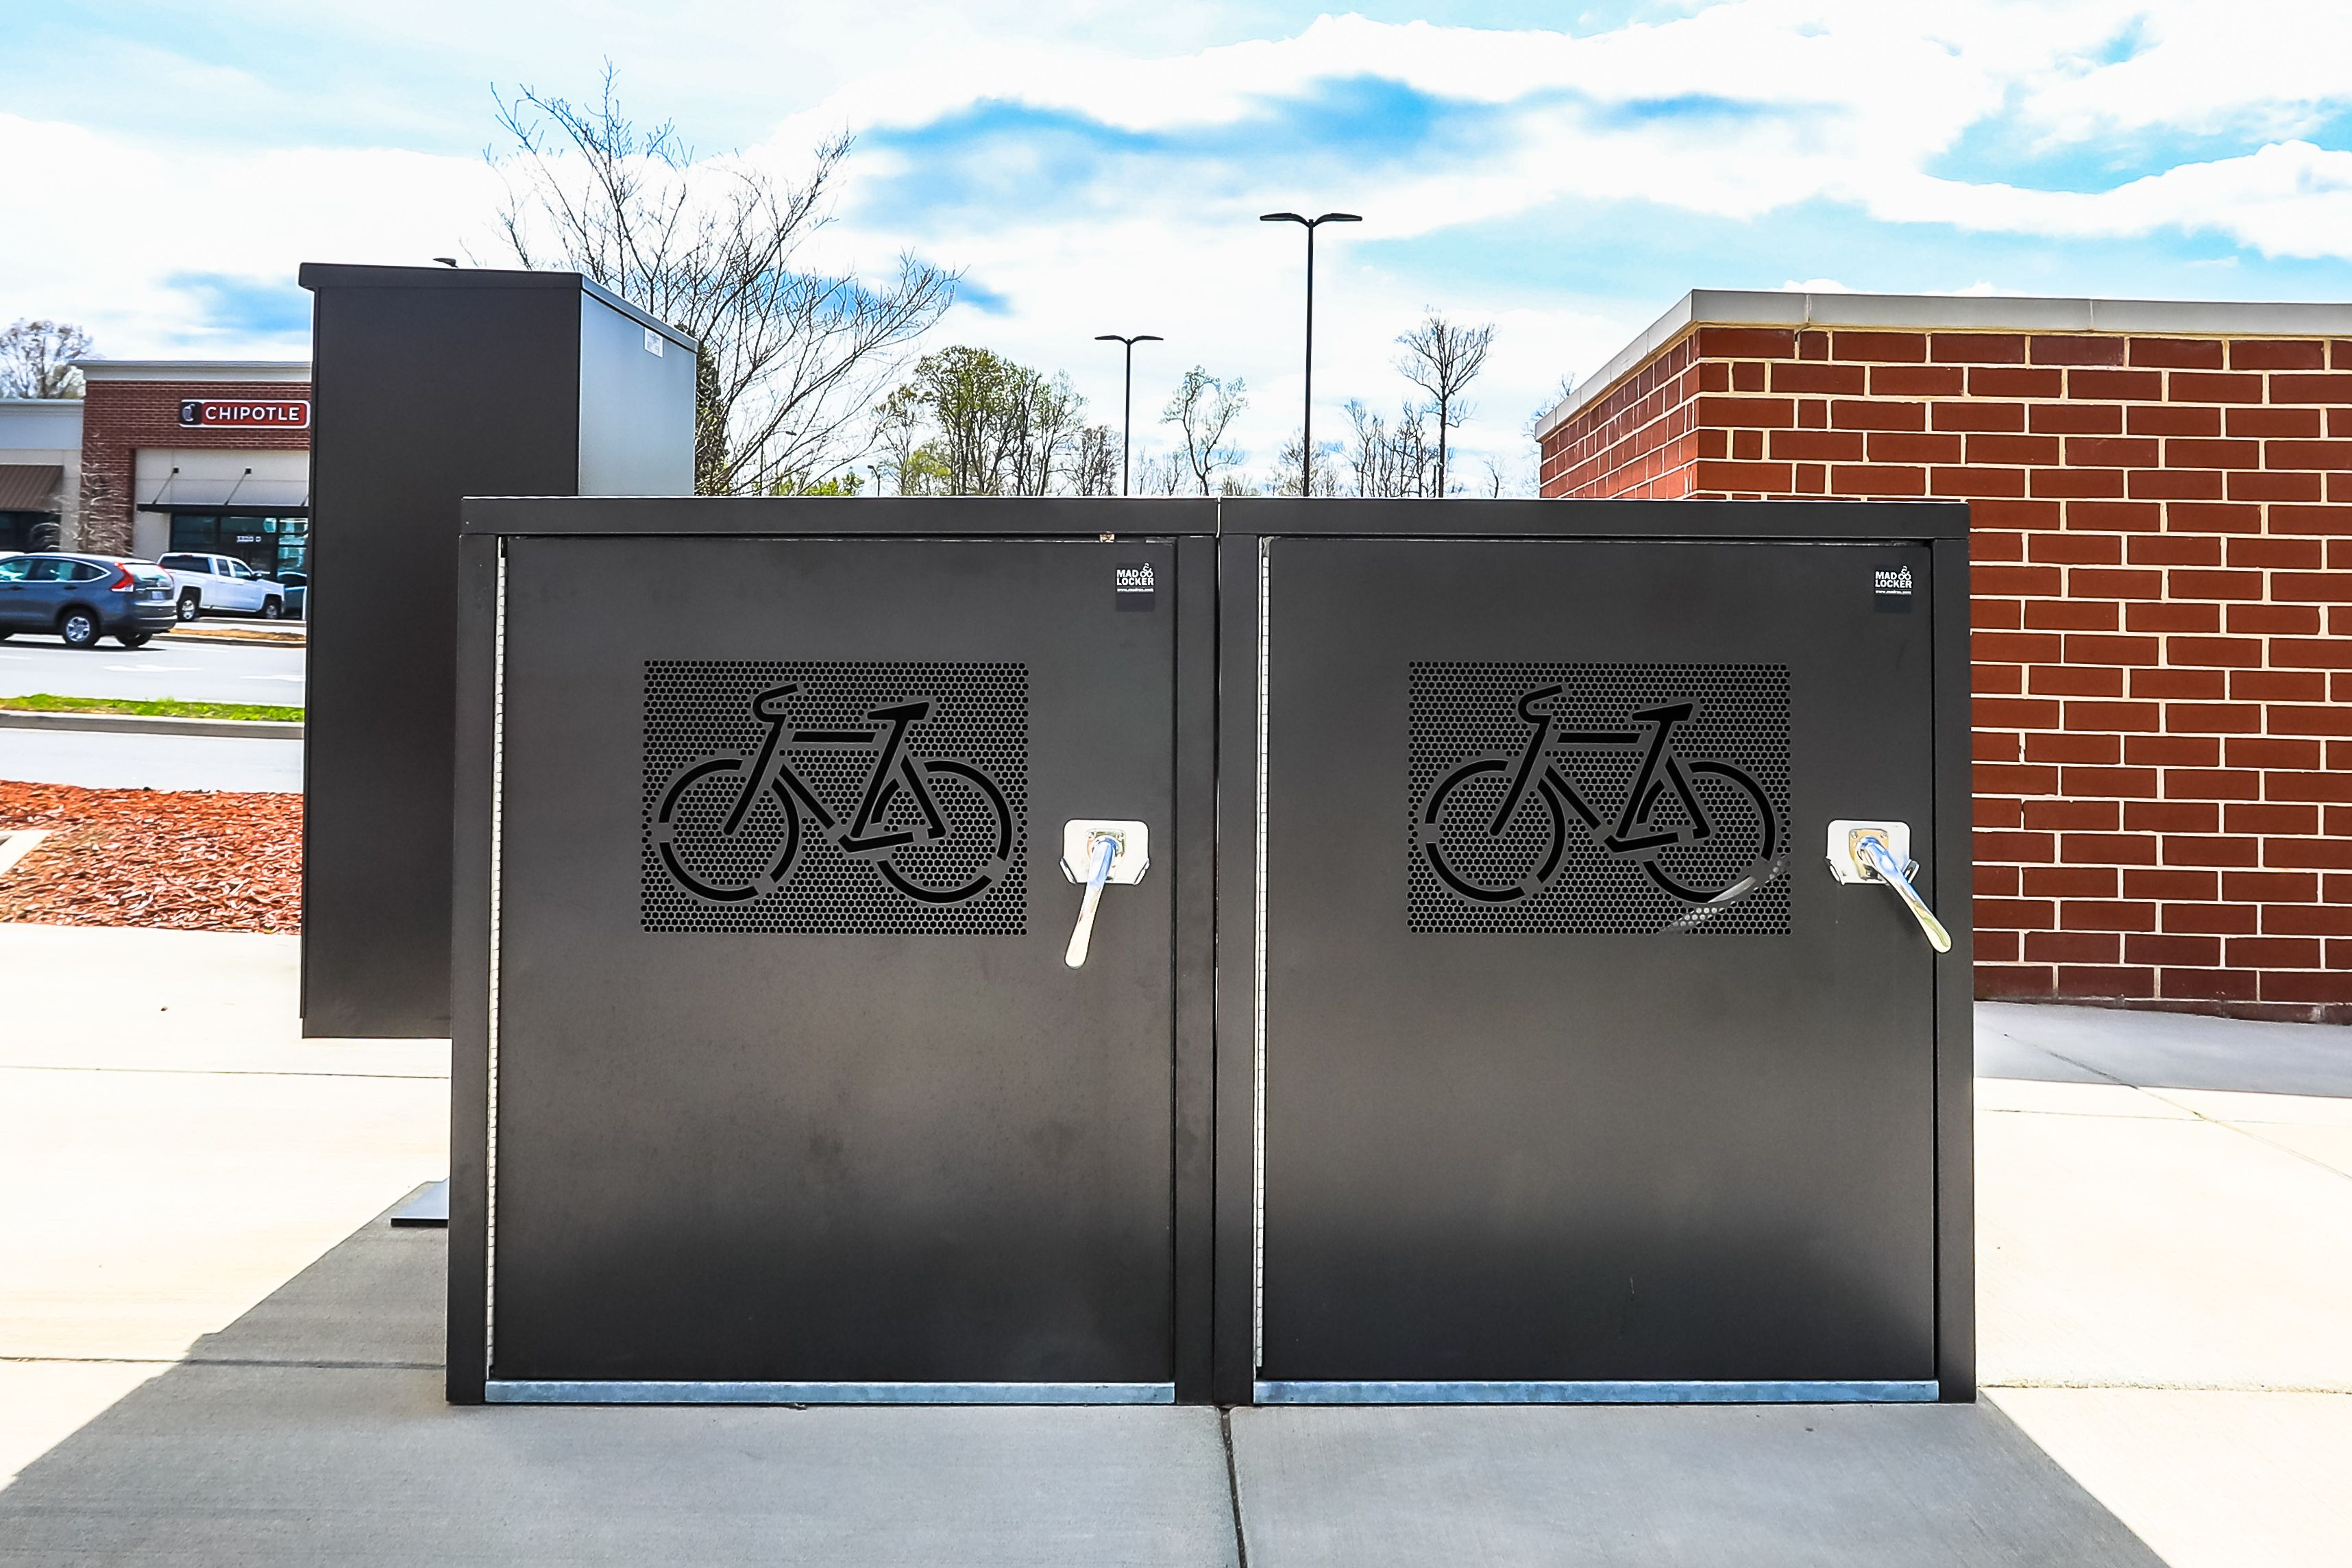 Bike Lockers Are An Excellent Way To Offer Long Term Bike Parking